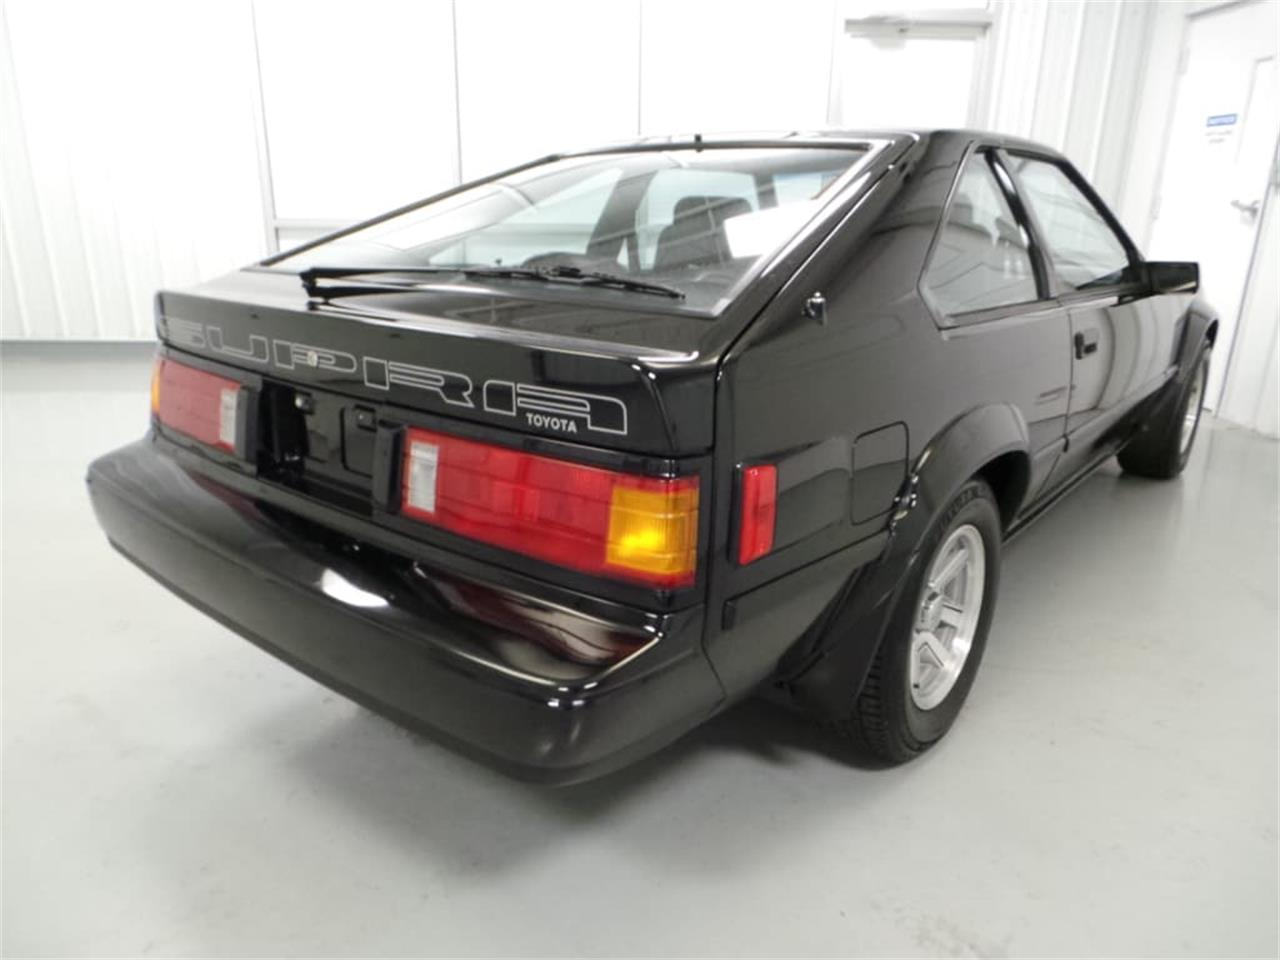 Large Picture of '84 Celica located in Christiansburg Virginia - $17,950.00 Offered by Duncan Imports & Classic Cars - JLCQ